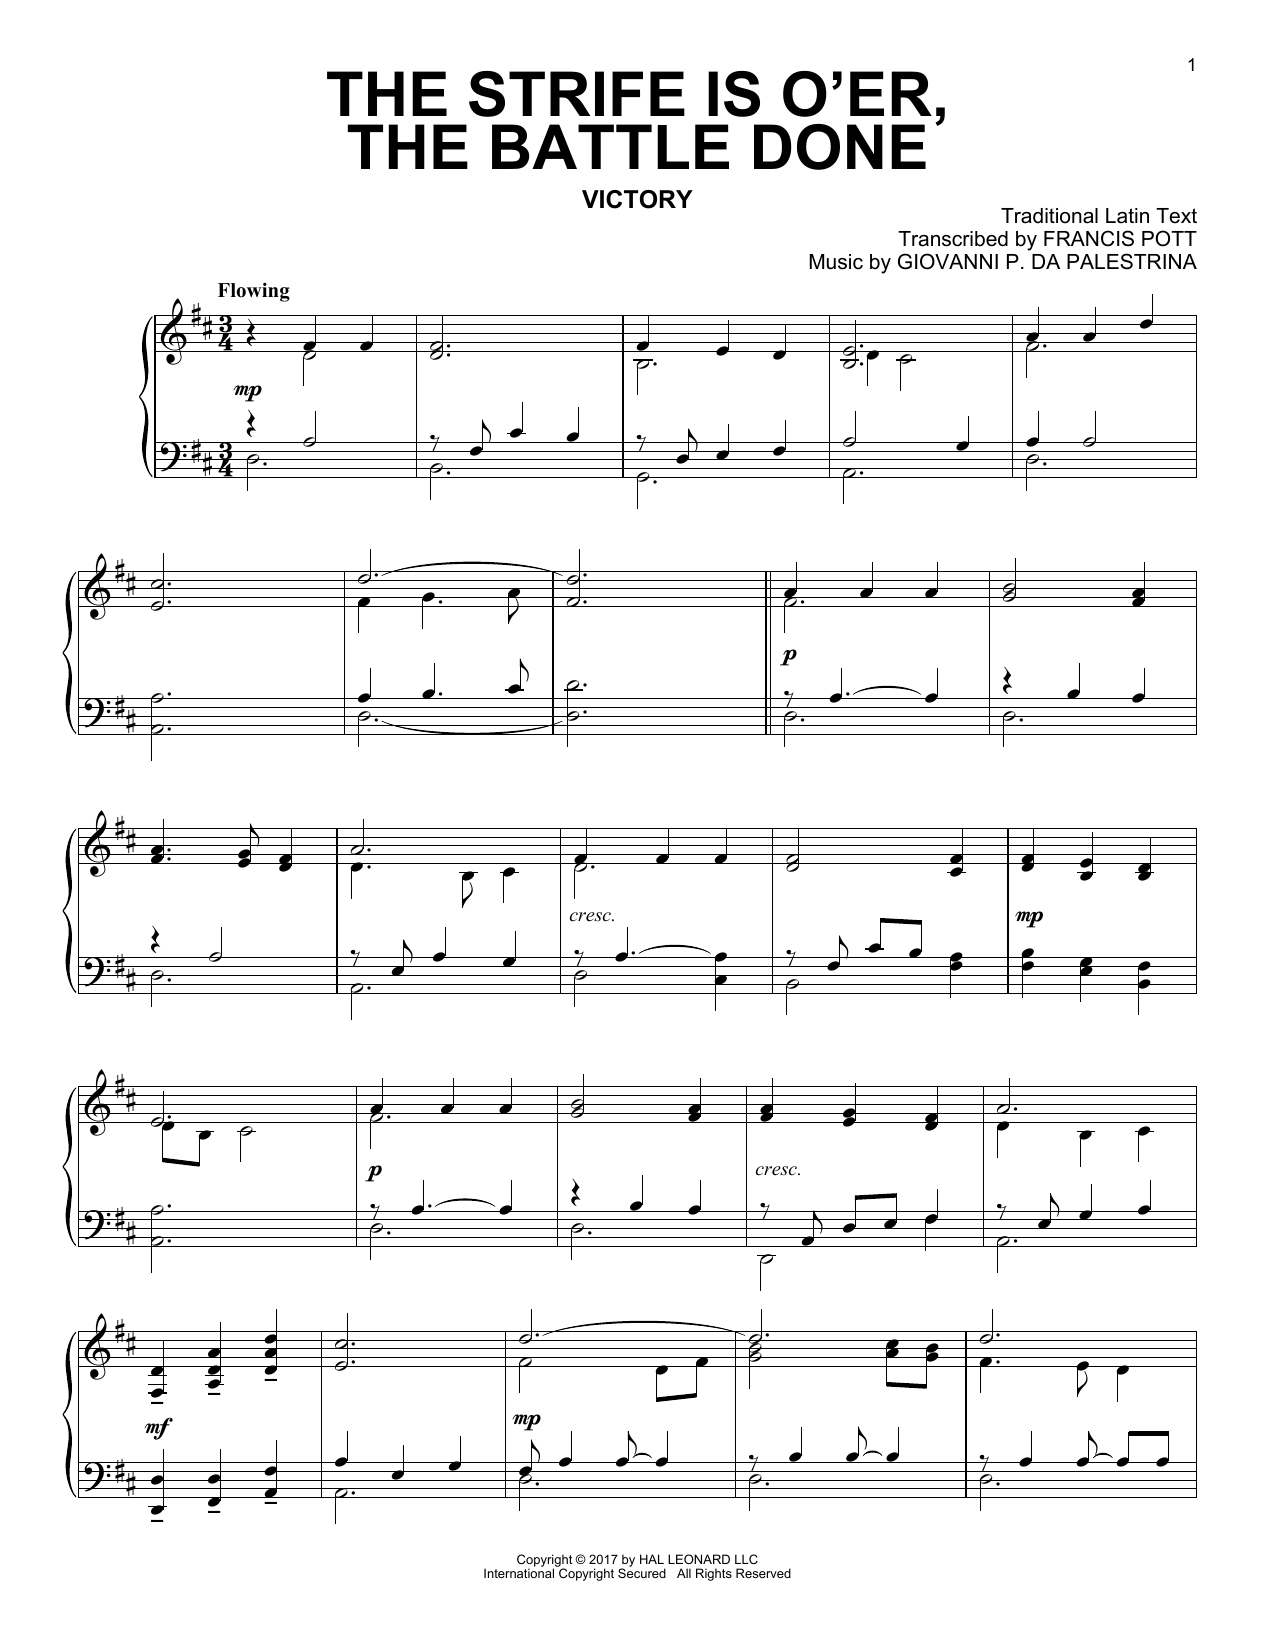 Traditional Latin Text The Strife Is O'er, The Battle Done sheet music notes and chords. Download Printable PDF.